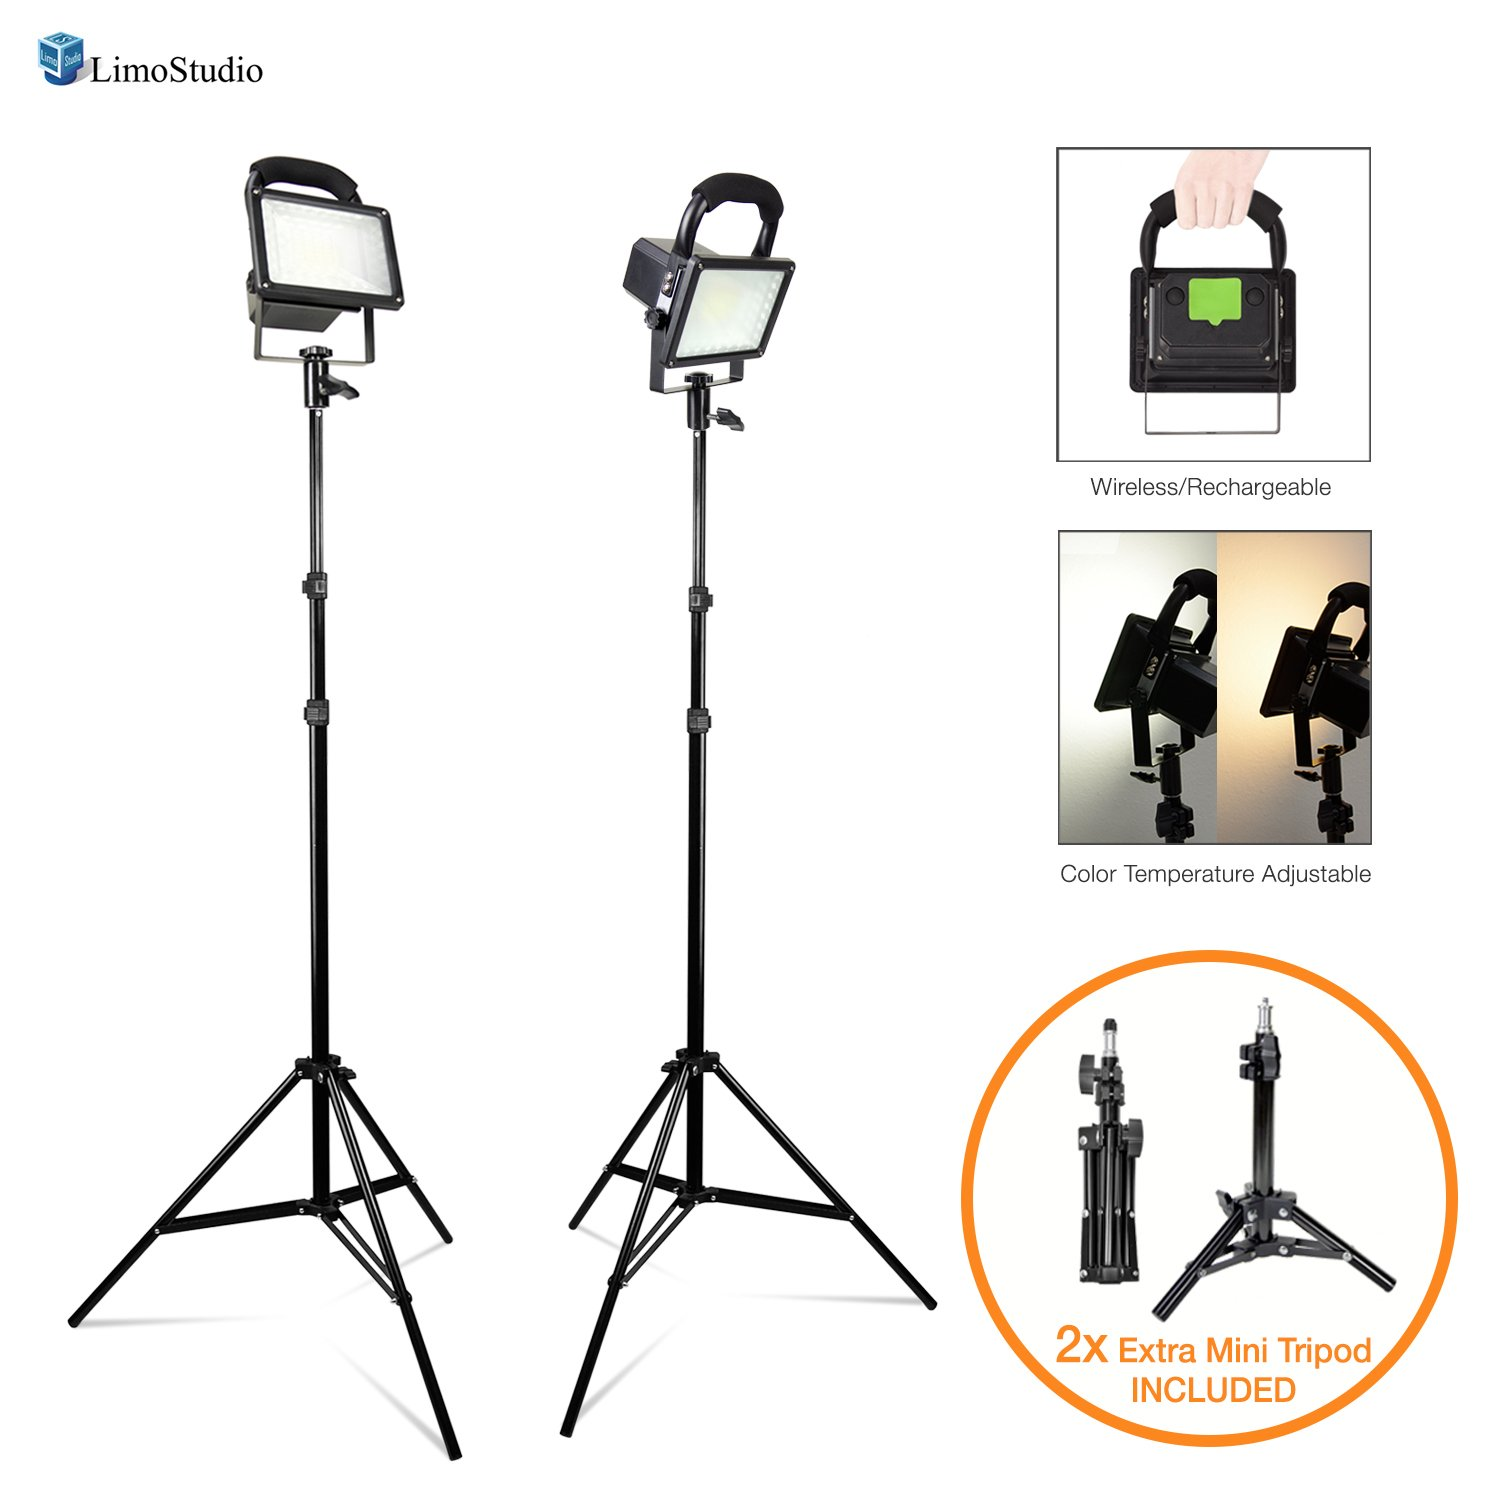 """LimoStudio [Set of 2] Portable Wireless 30W LED Spotlight Flood Lighting Kit with 17'' Table Top Accent Light Stand, 86"""" Light Stand Tripod, and Rechargeable Battery for Photo Video Studio, AGG2727"""